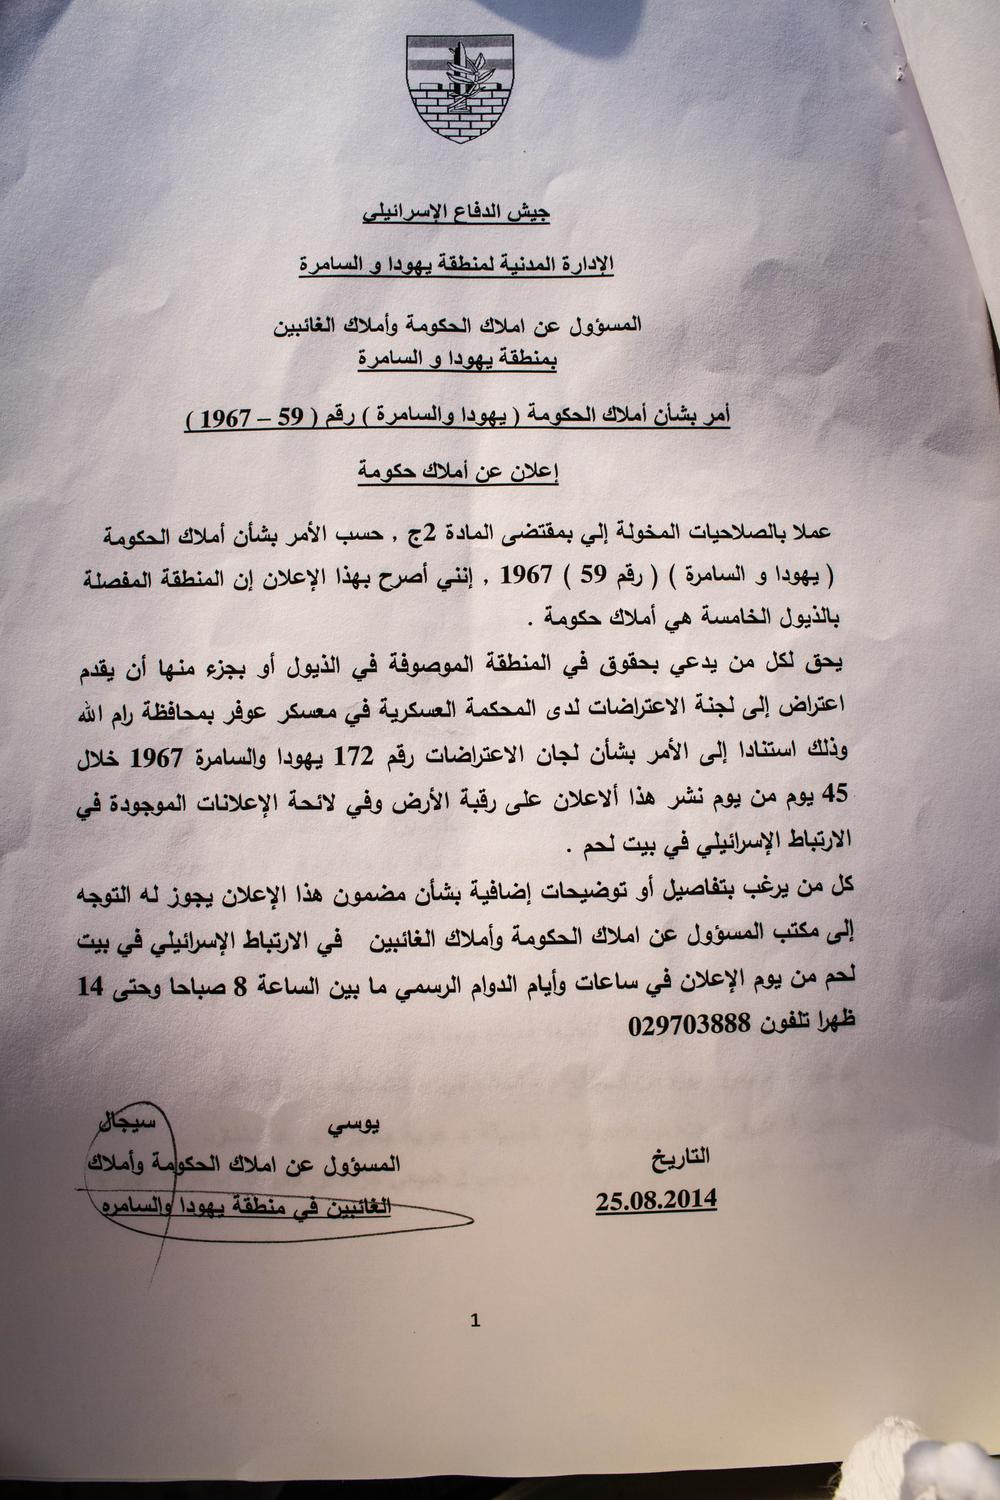 Official letter to the villagers announce that their land is now (***)state land(***). The letter was written in Hebrew and Arabic and pinned on every cardboard sign planted in the land. The farmers have 45 days to appeal the decision.